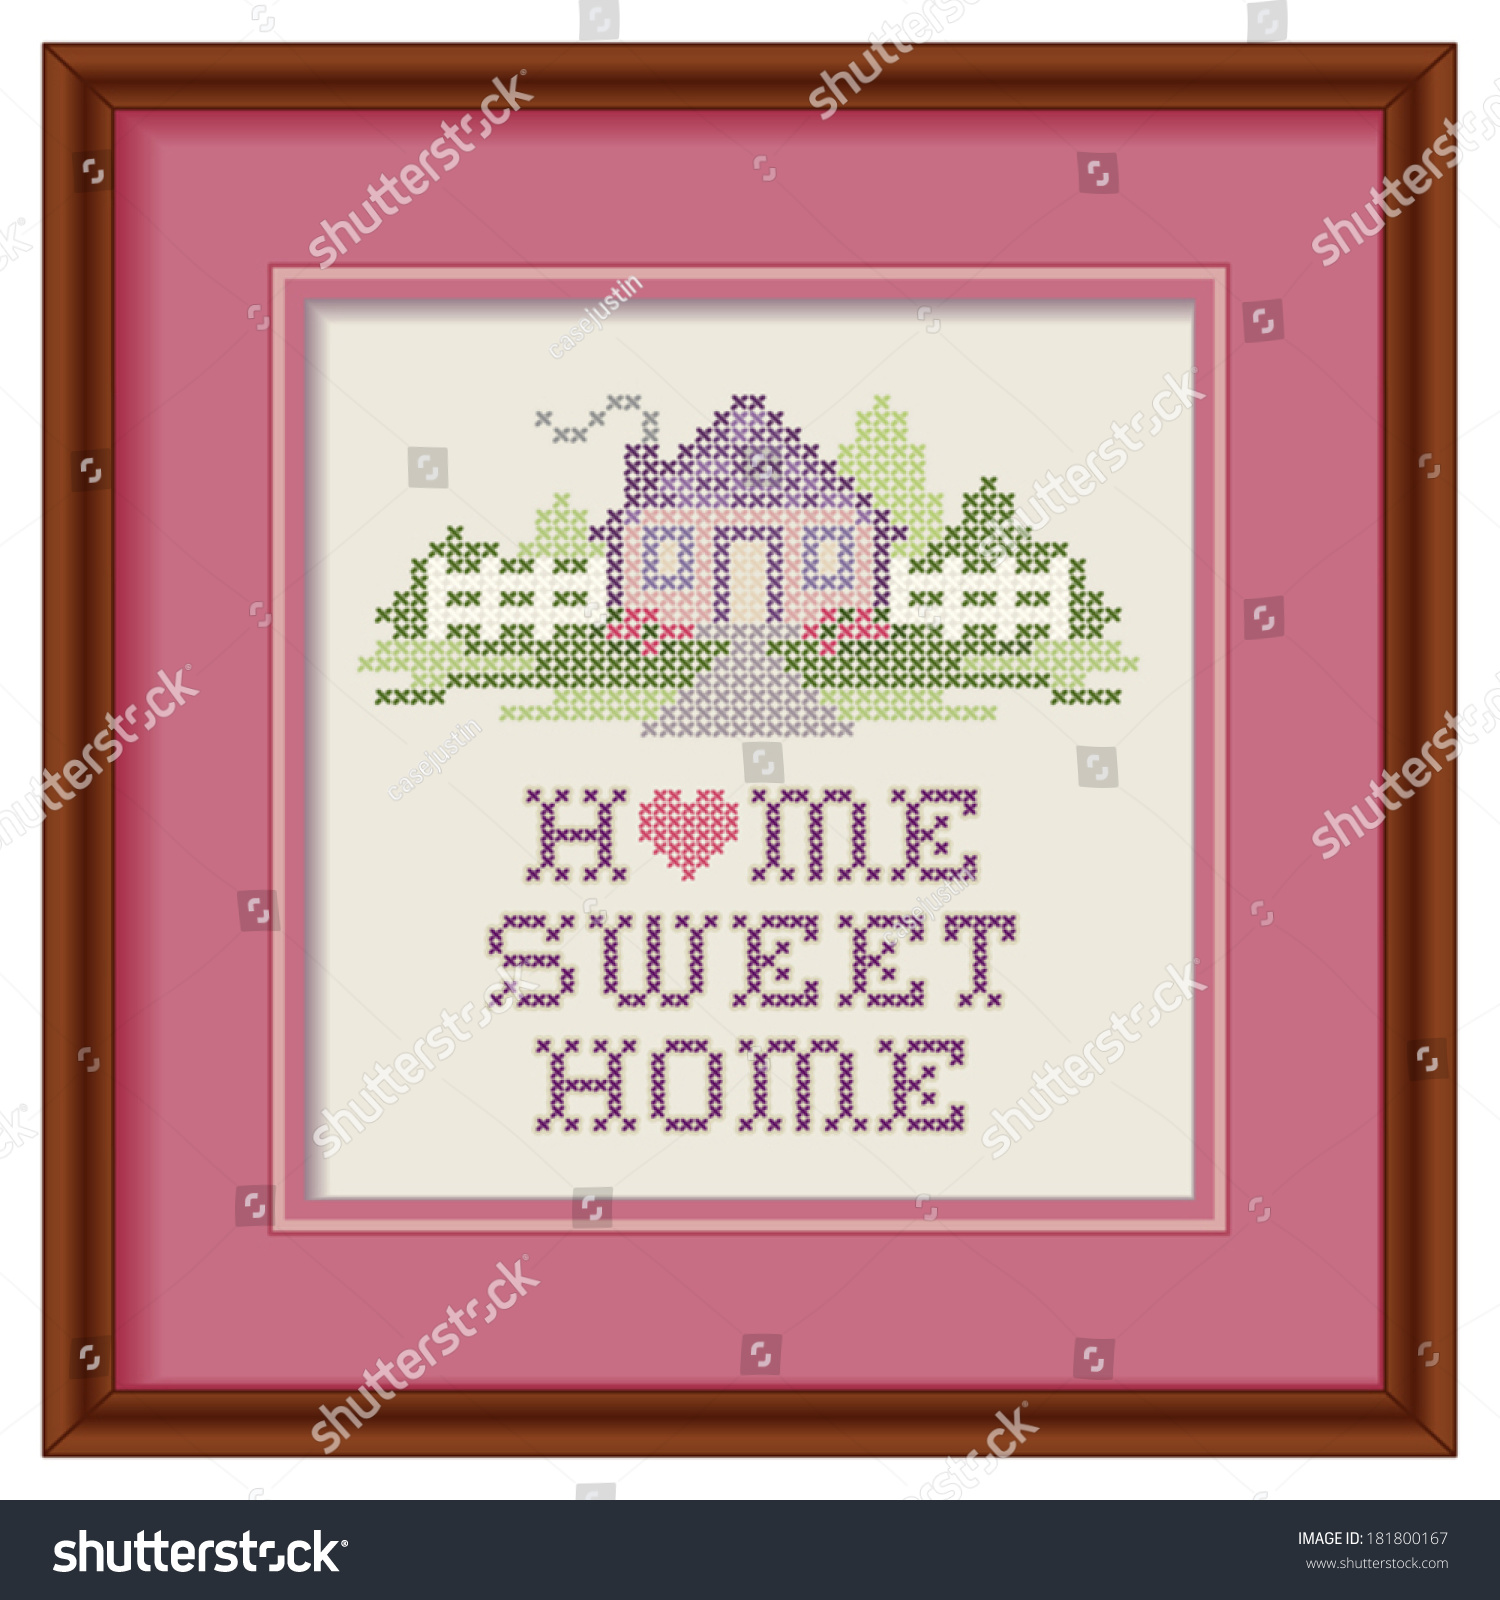 Home Sweet Home Embroidery Cross Stitch Stock Vector (Royalty Free ...